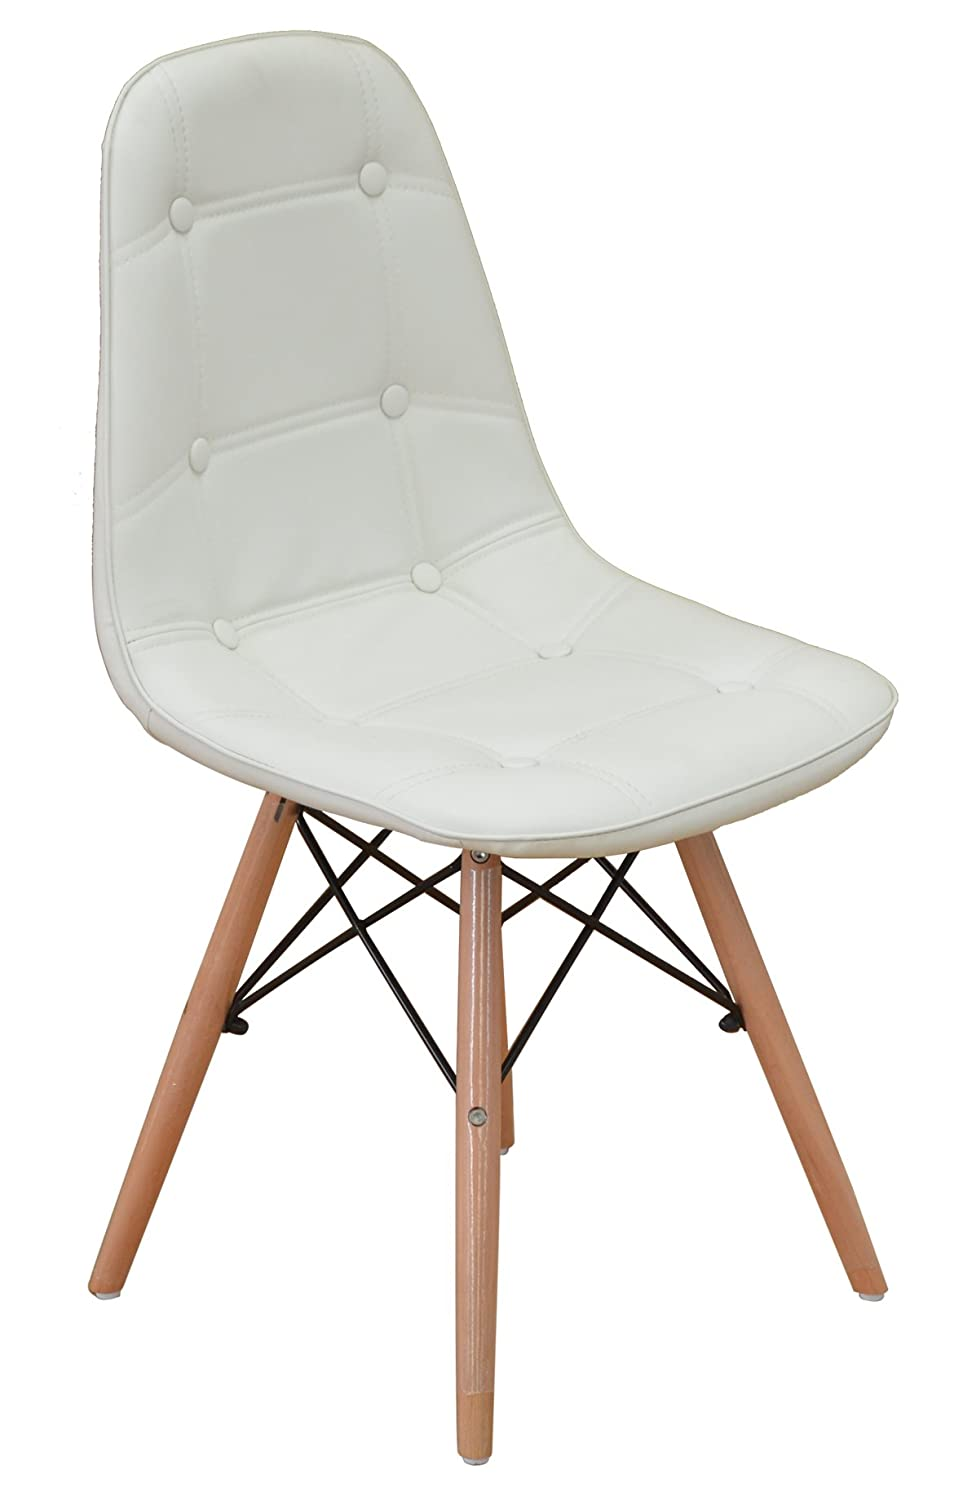 Eames stuhl replika top eames dining chair replica lovely for Stuhl replica